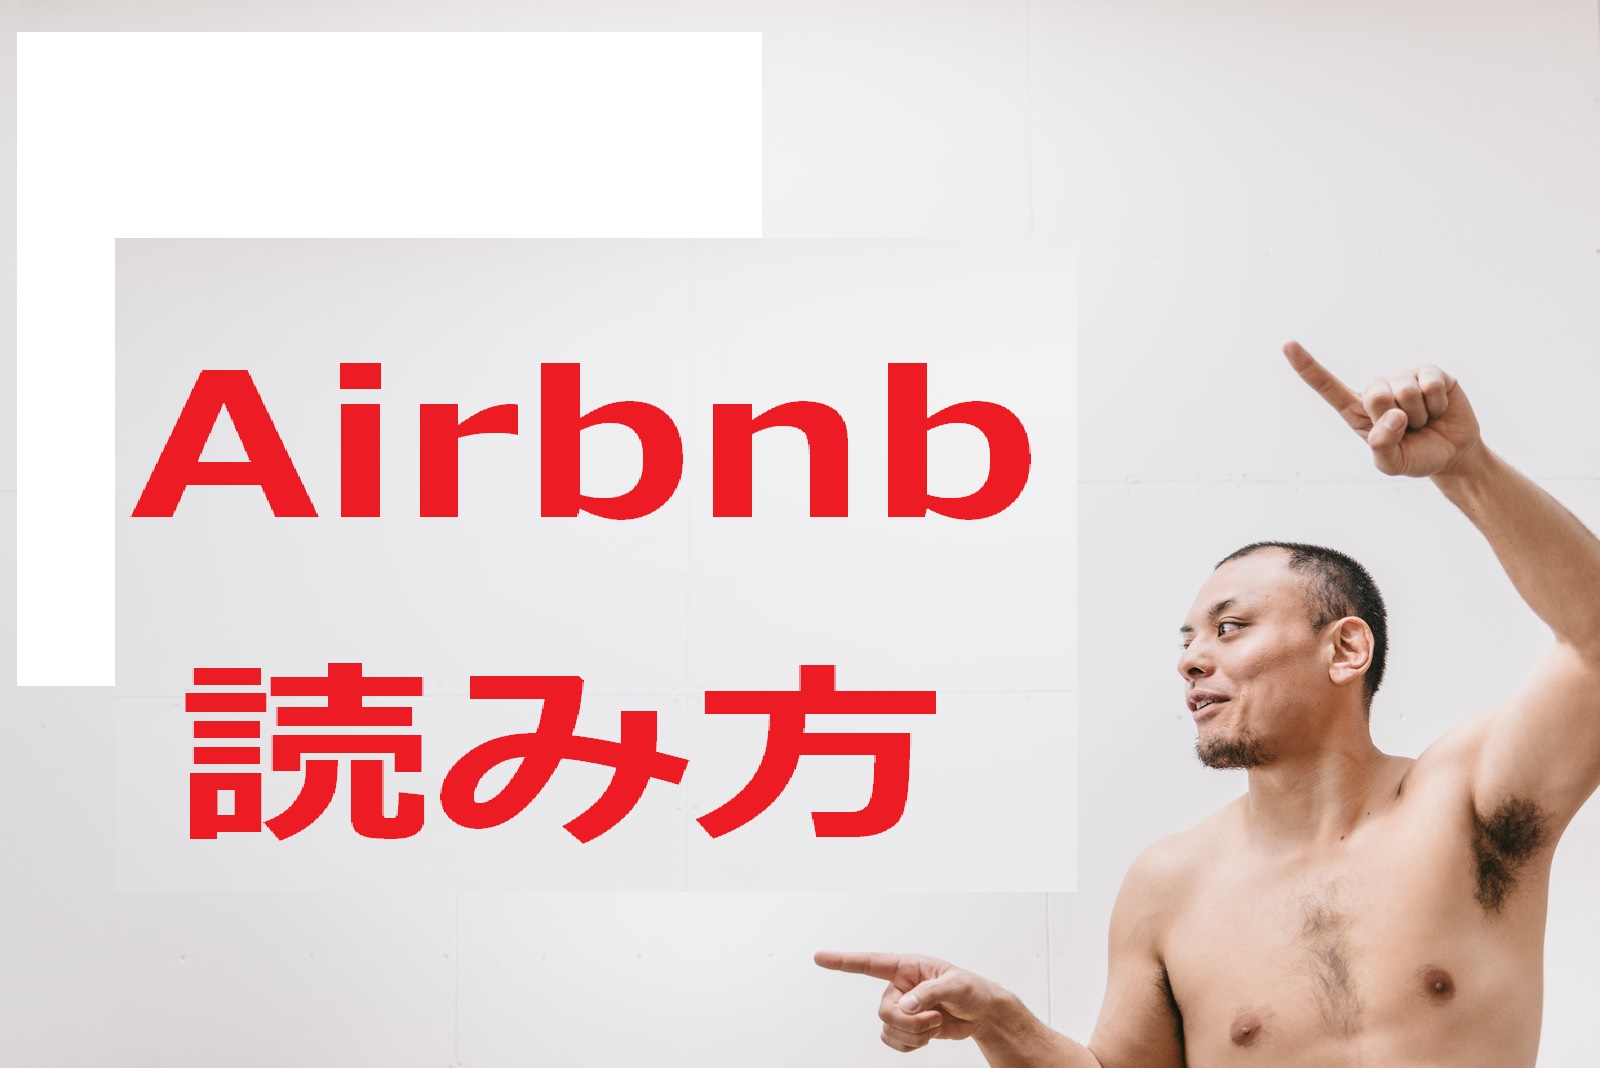 airbnb 読み方とは